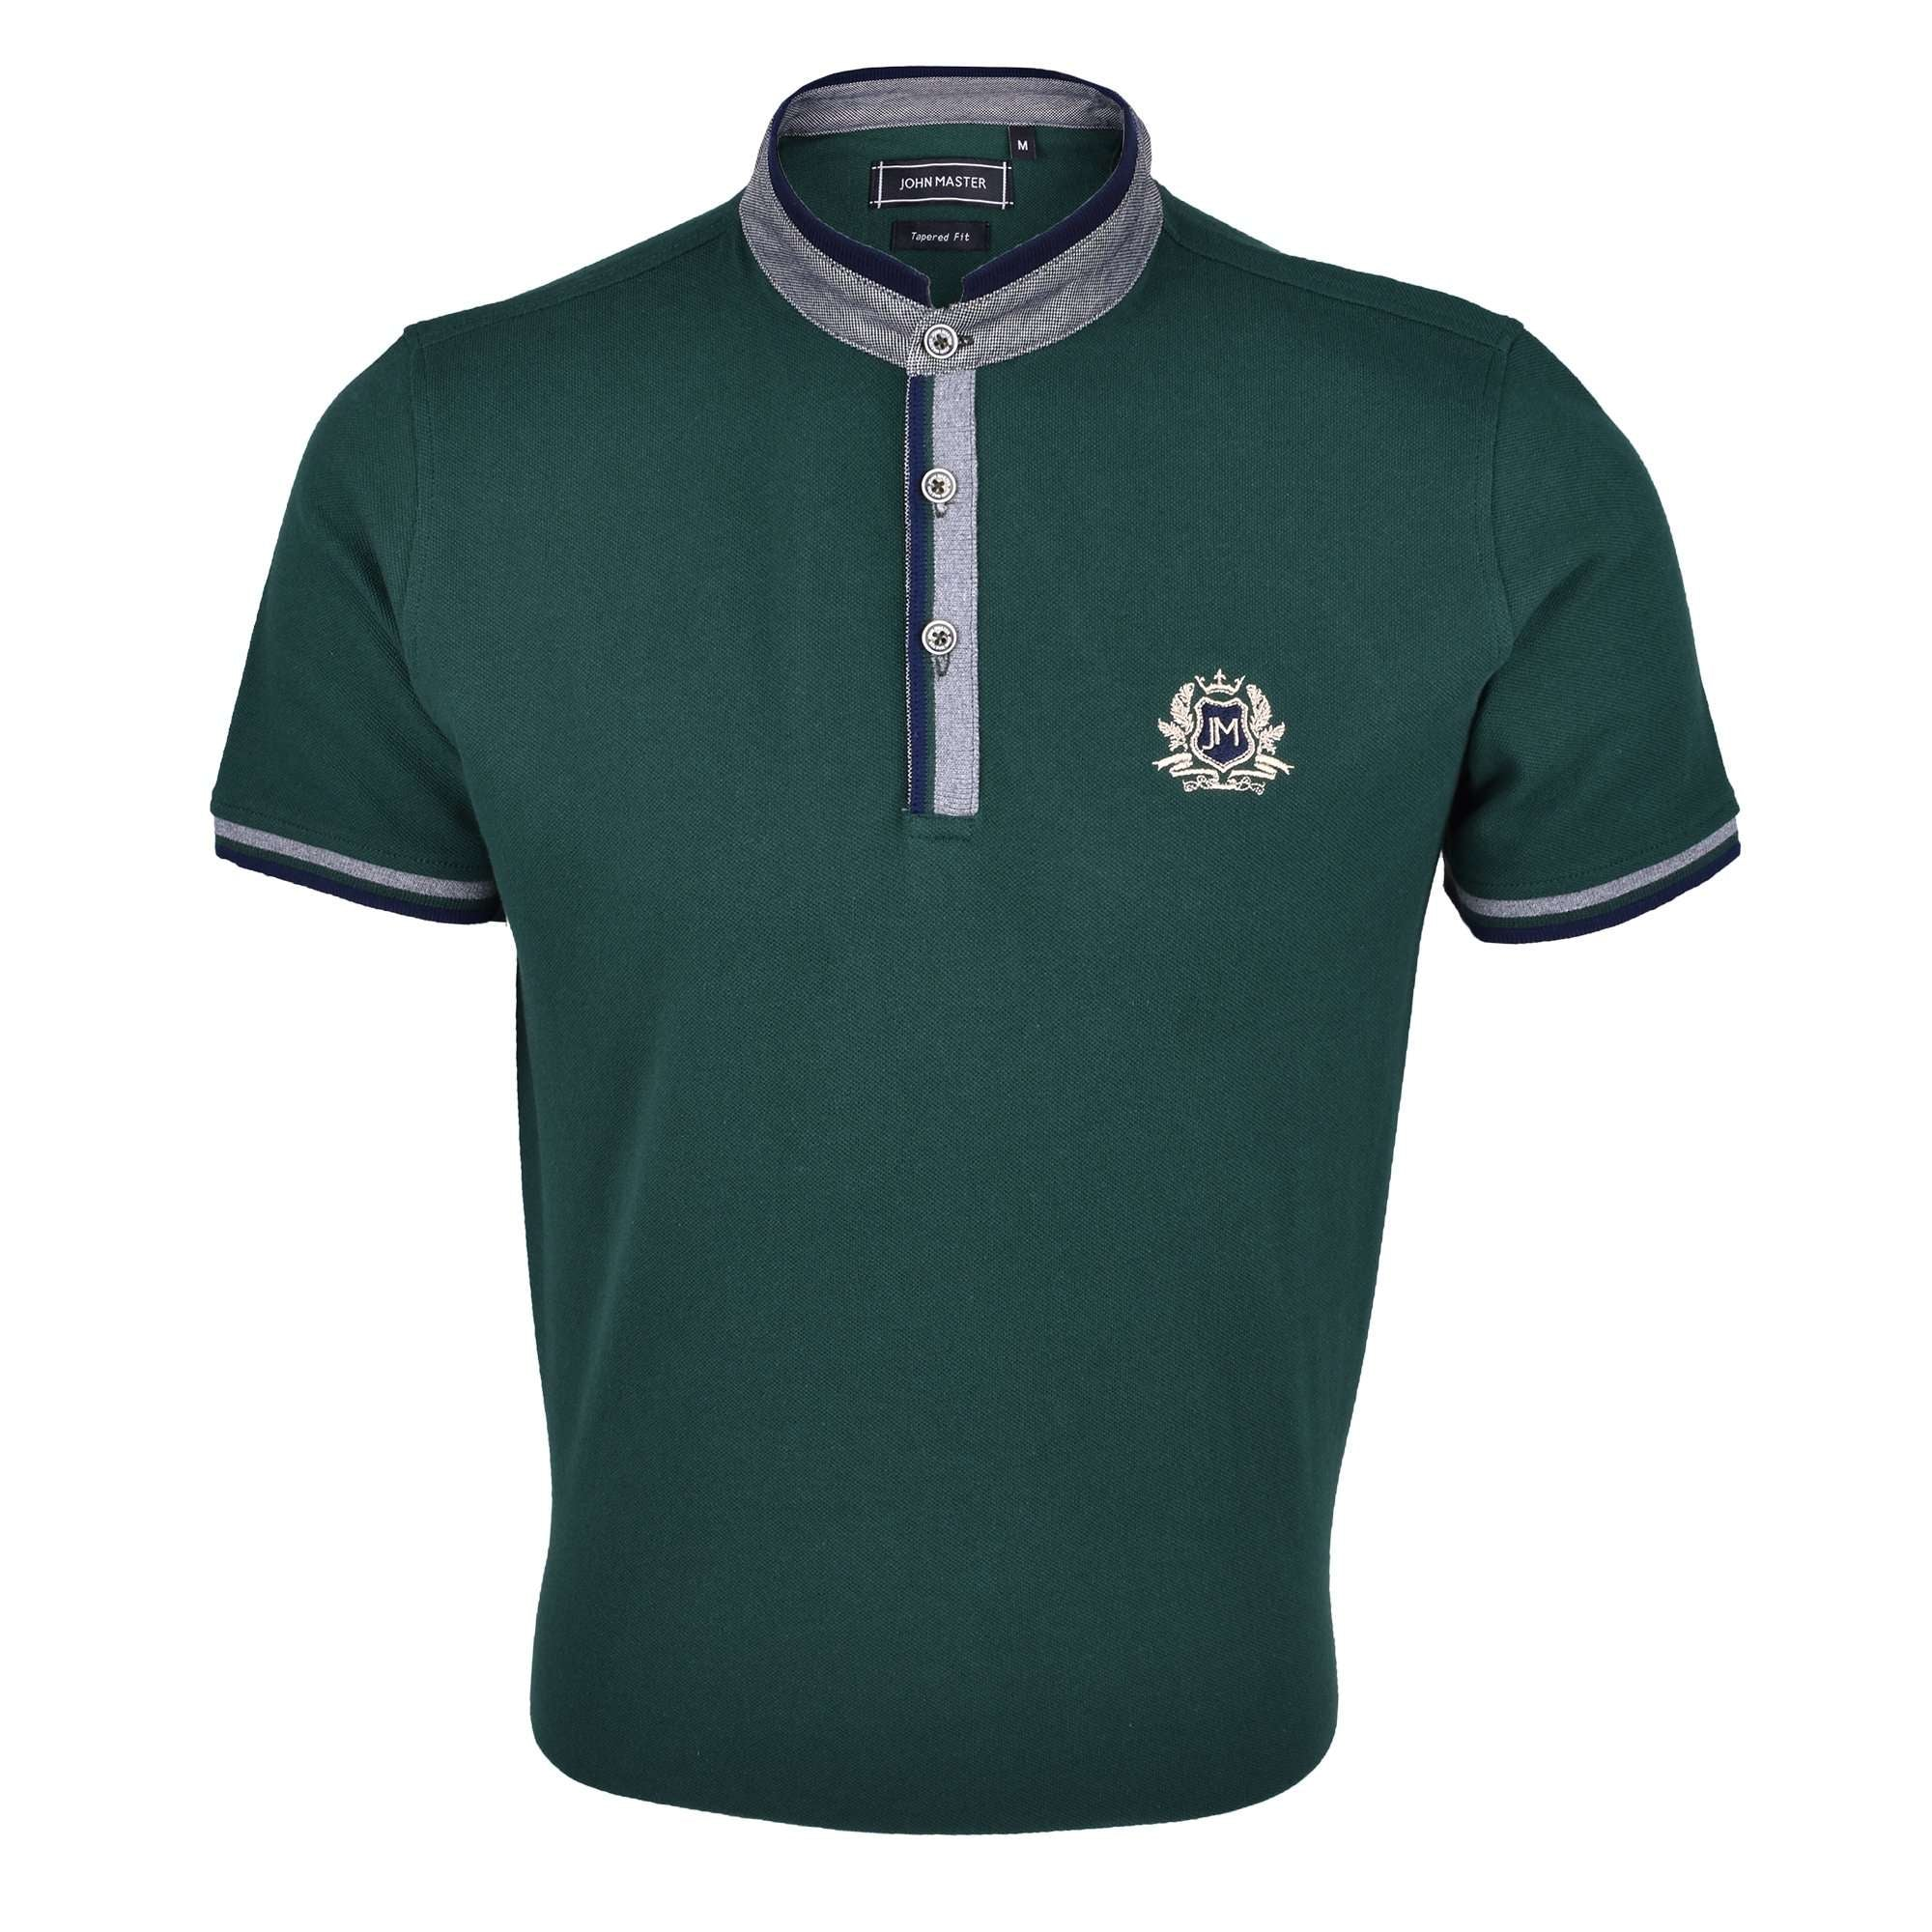 John Master Men Casual Tapered fit Polo Tee Green 8088001-N8 : Buy John Master online at CMG.MY